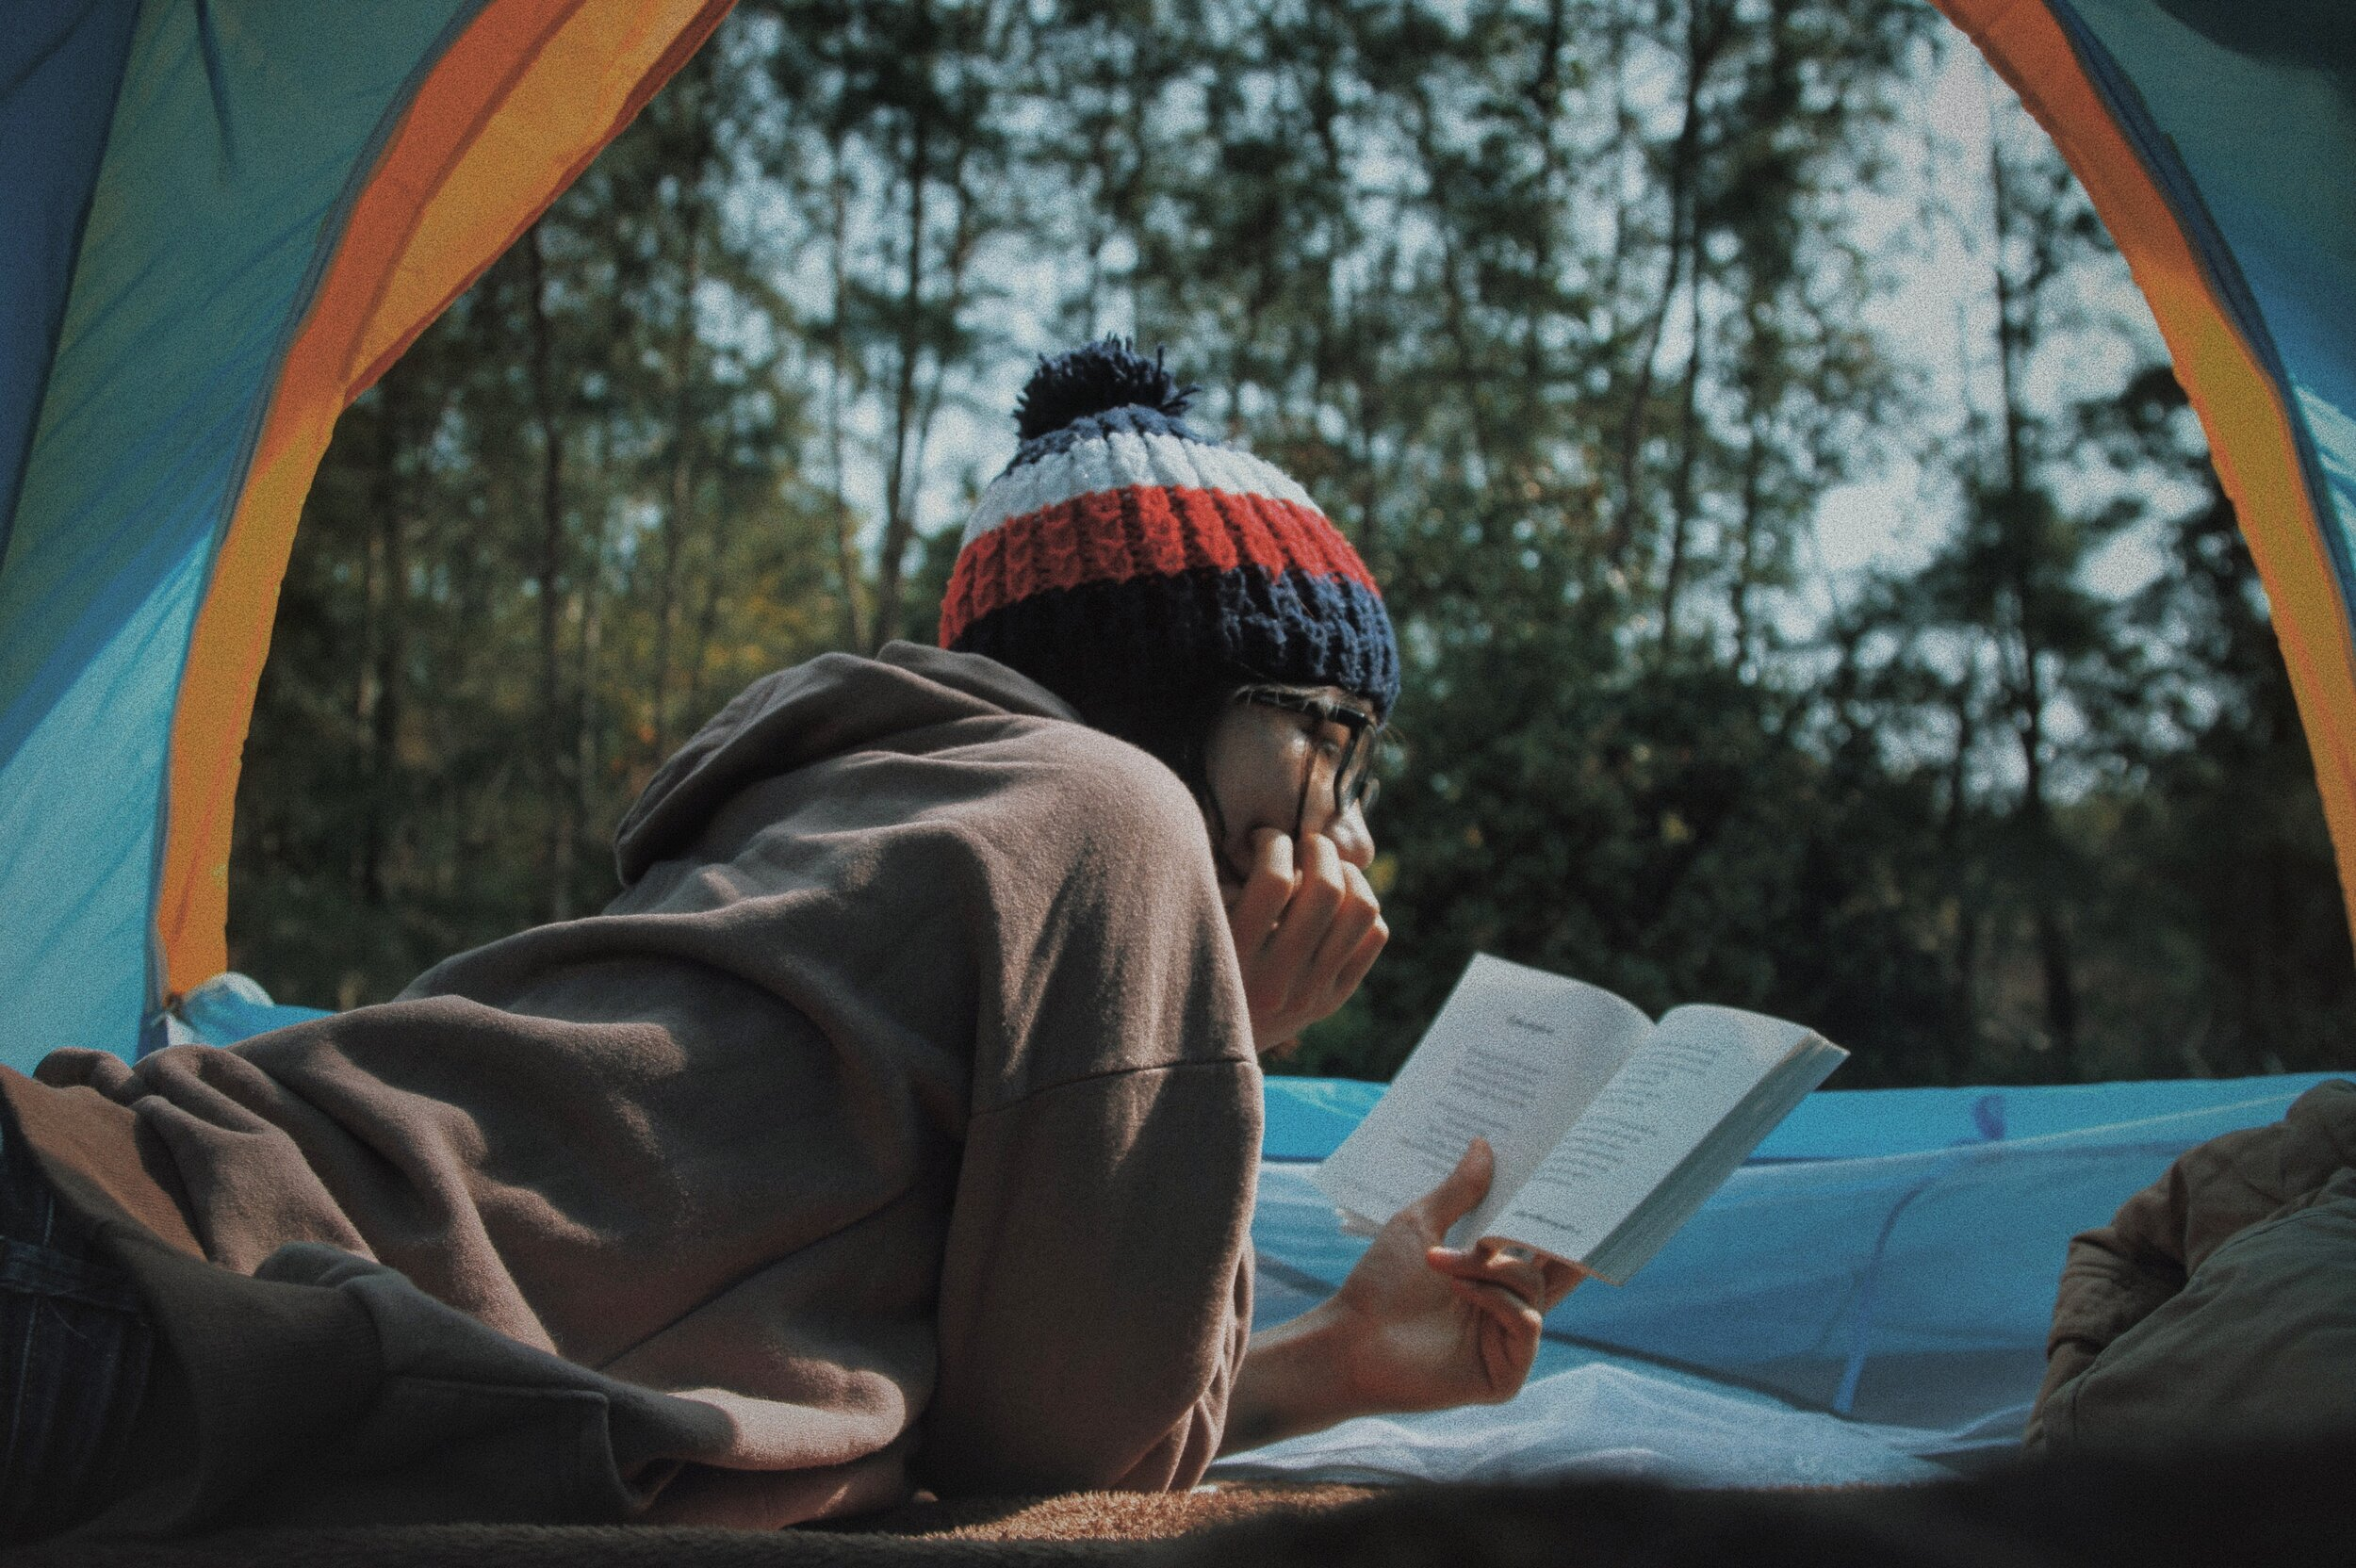 Interests are things you find motivational, inspirational, or make you feel good like reading or camping